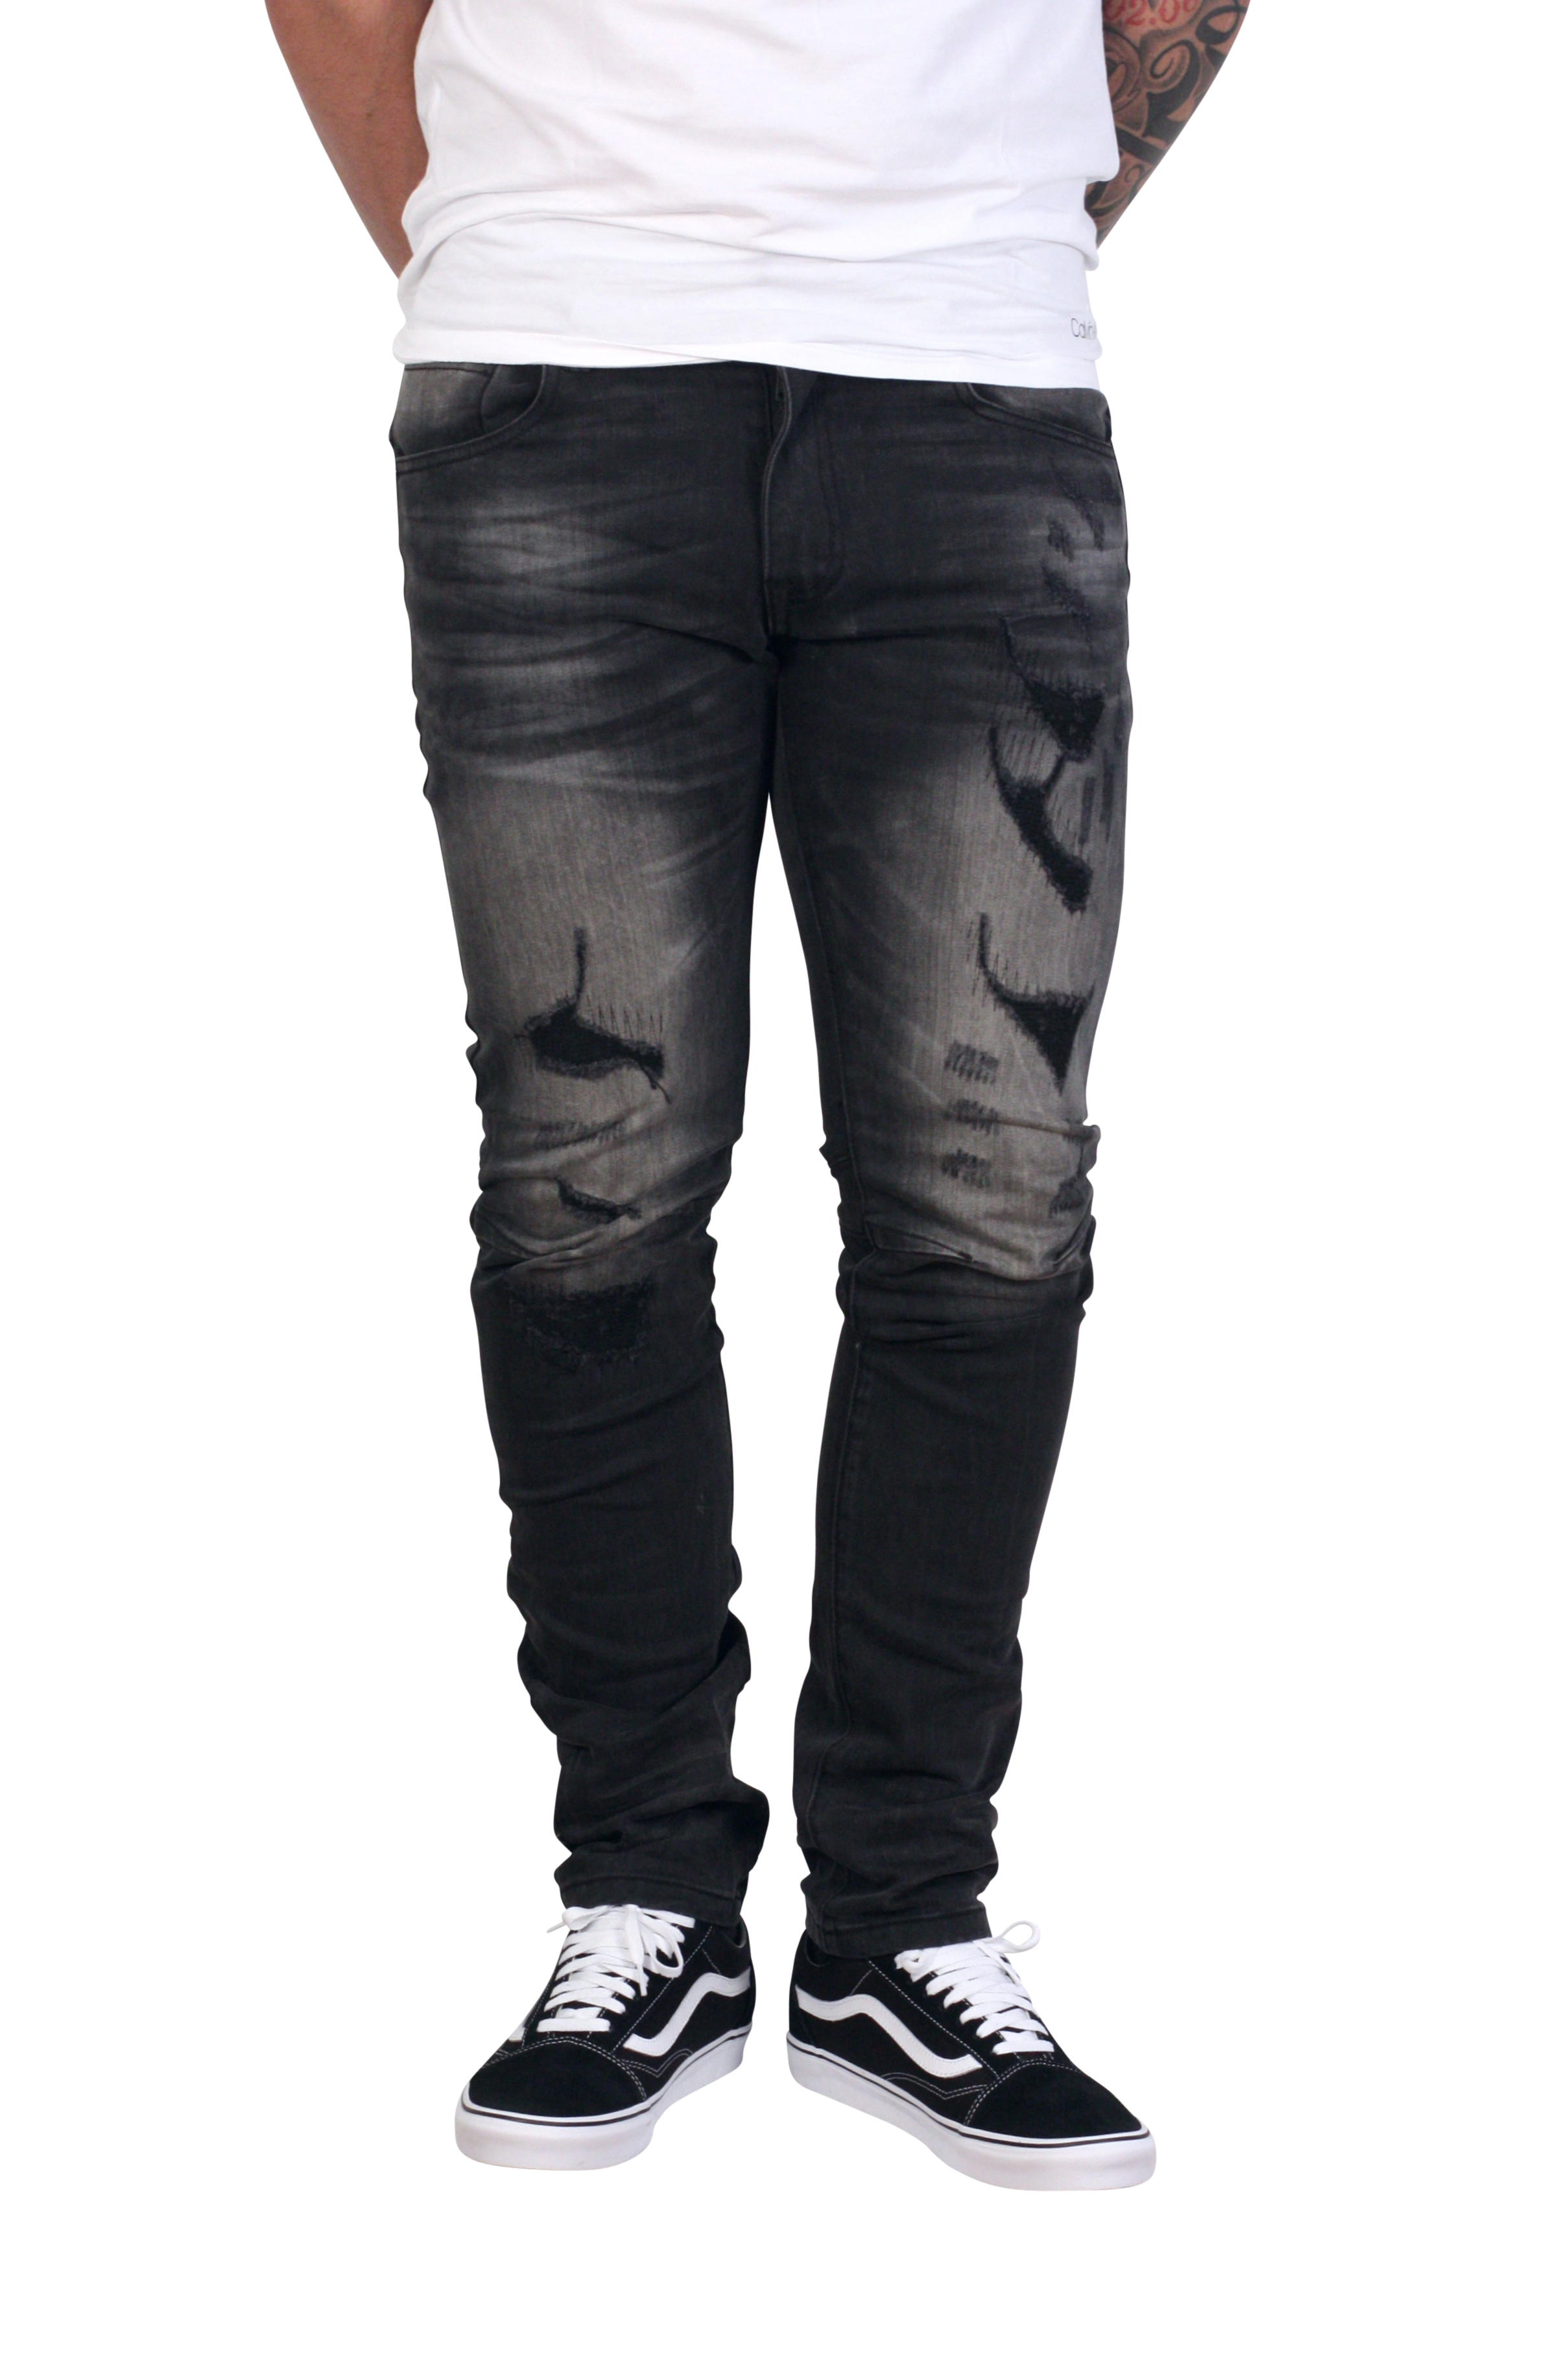 Smoke Rise Mens Ripped Knee Stretch Slim Fit Denim Jeans Black